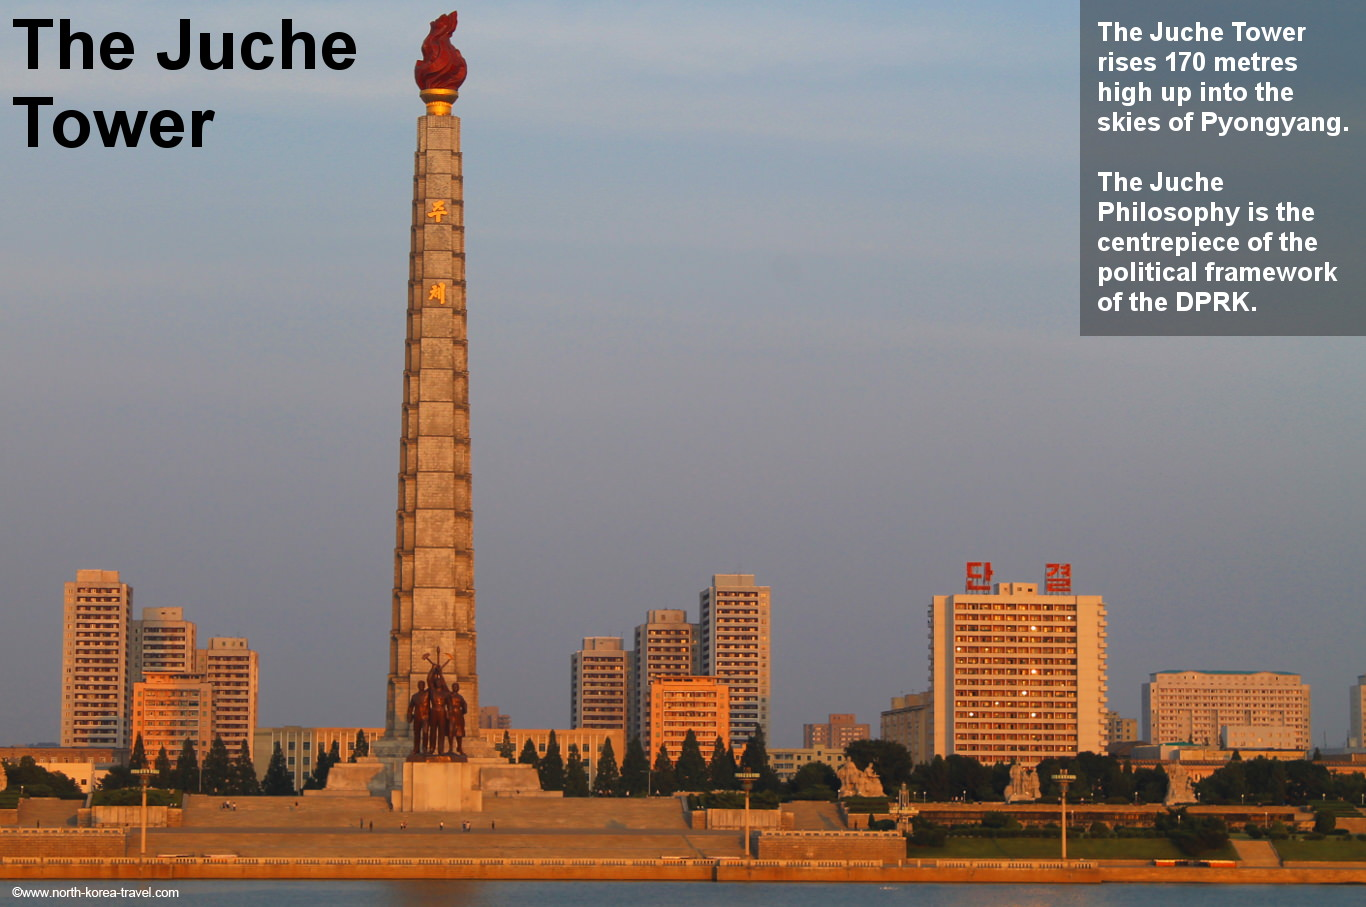 The Juche Tower in Pyongyang seen from across the Taedong River, DPRK (North Korea)